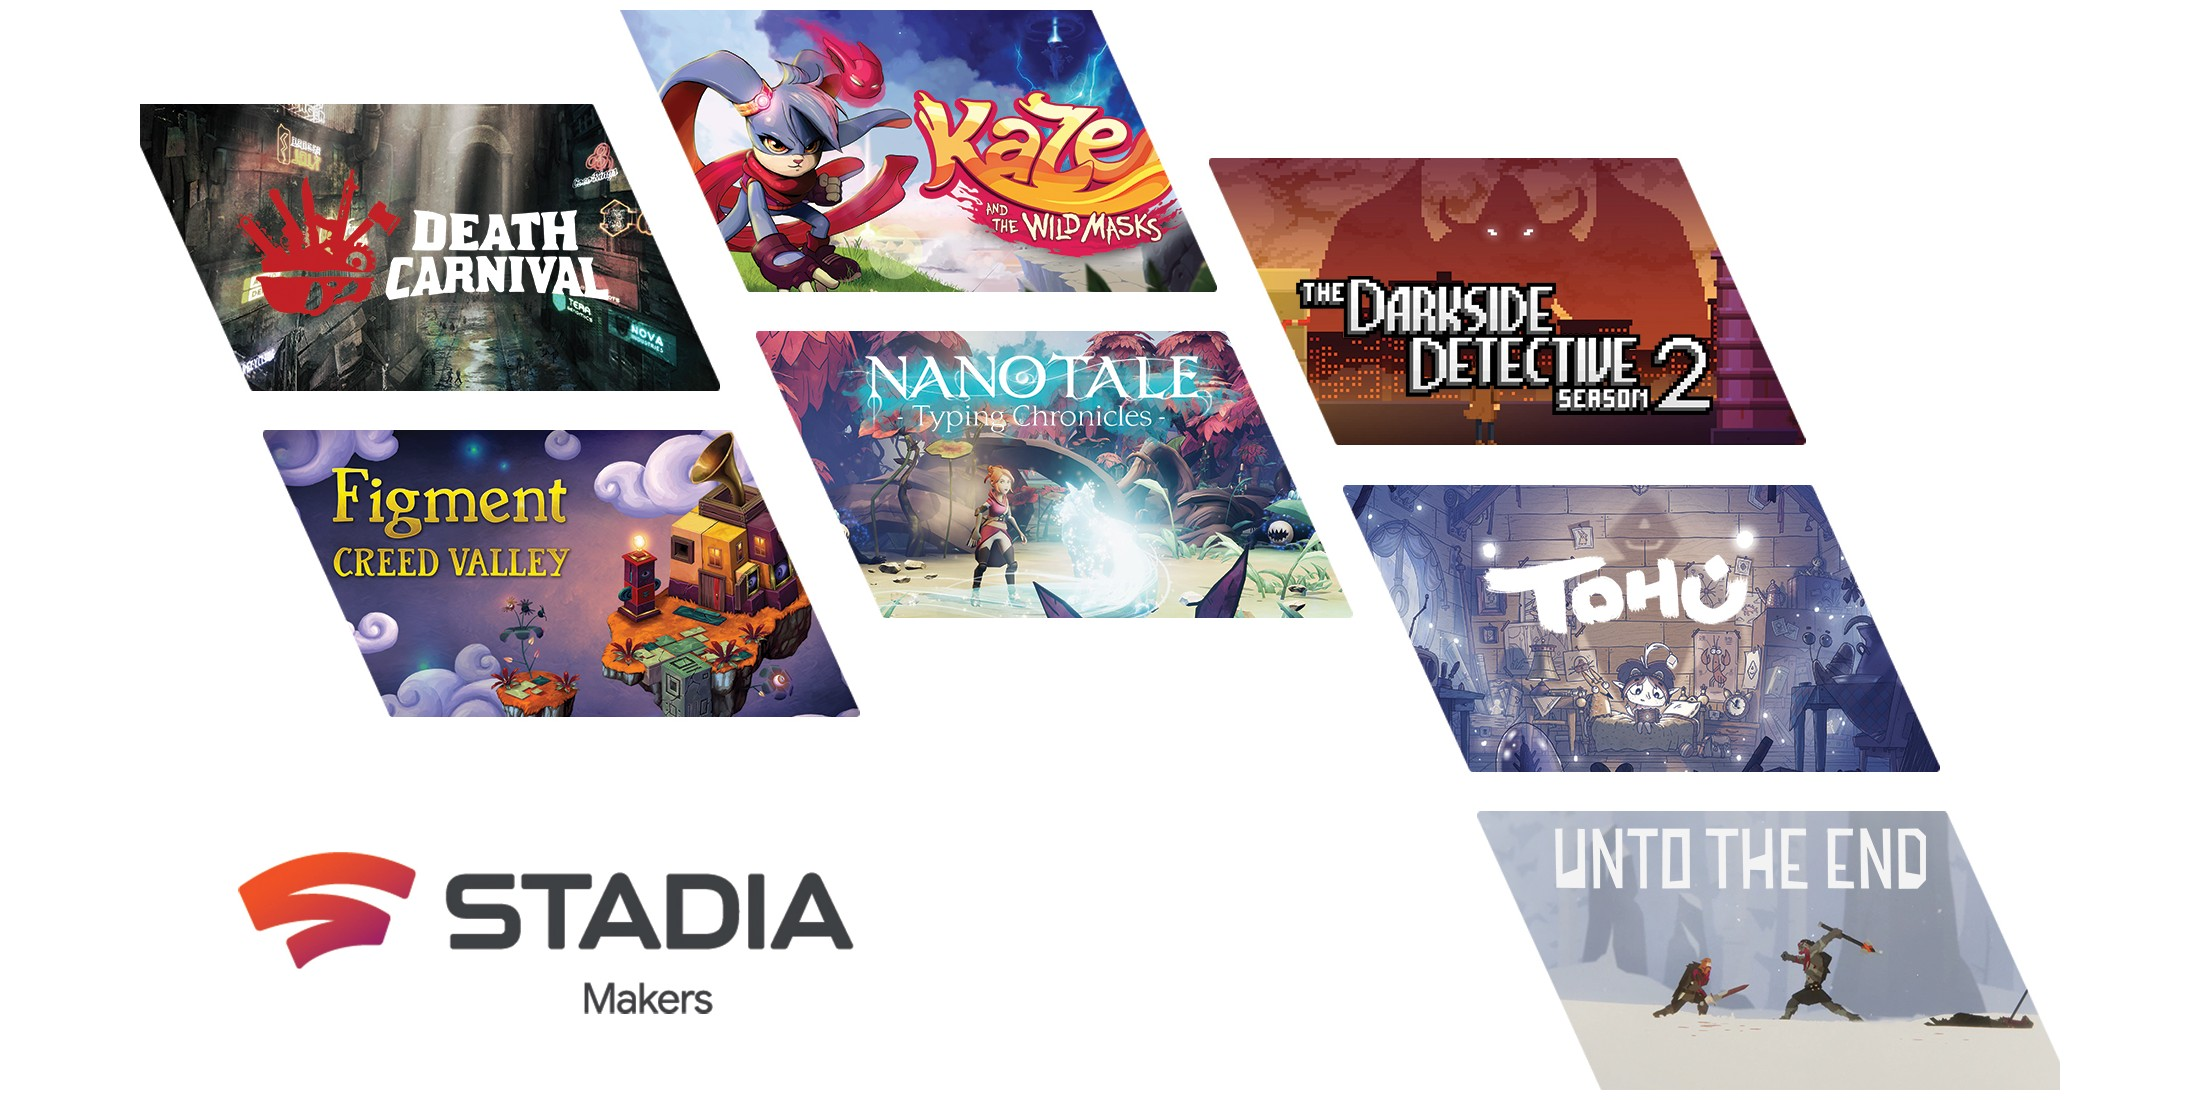 First batch of 'Stadia Makers' games brings seven new indie titles to Stadia - 9to5Google